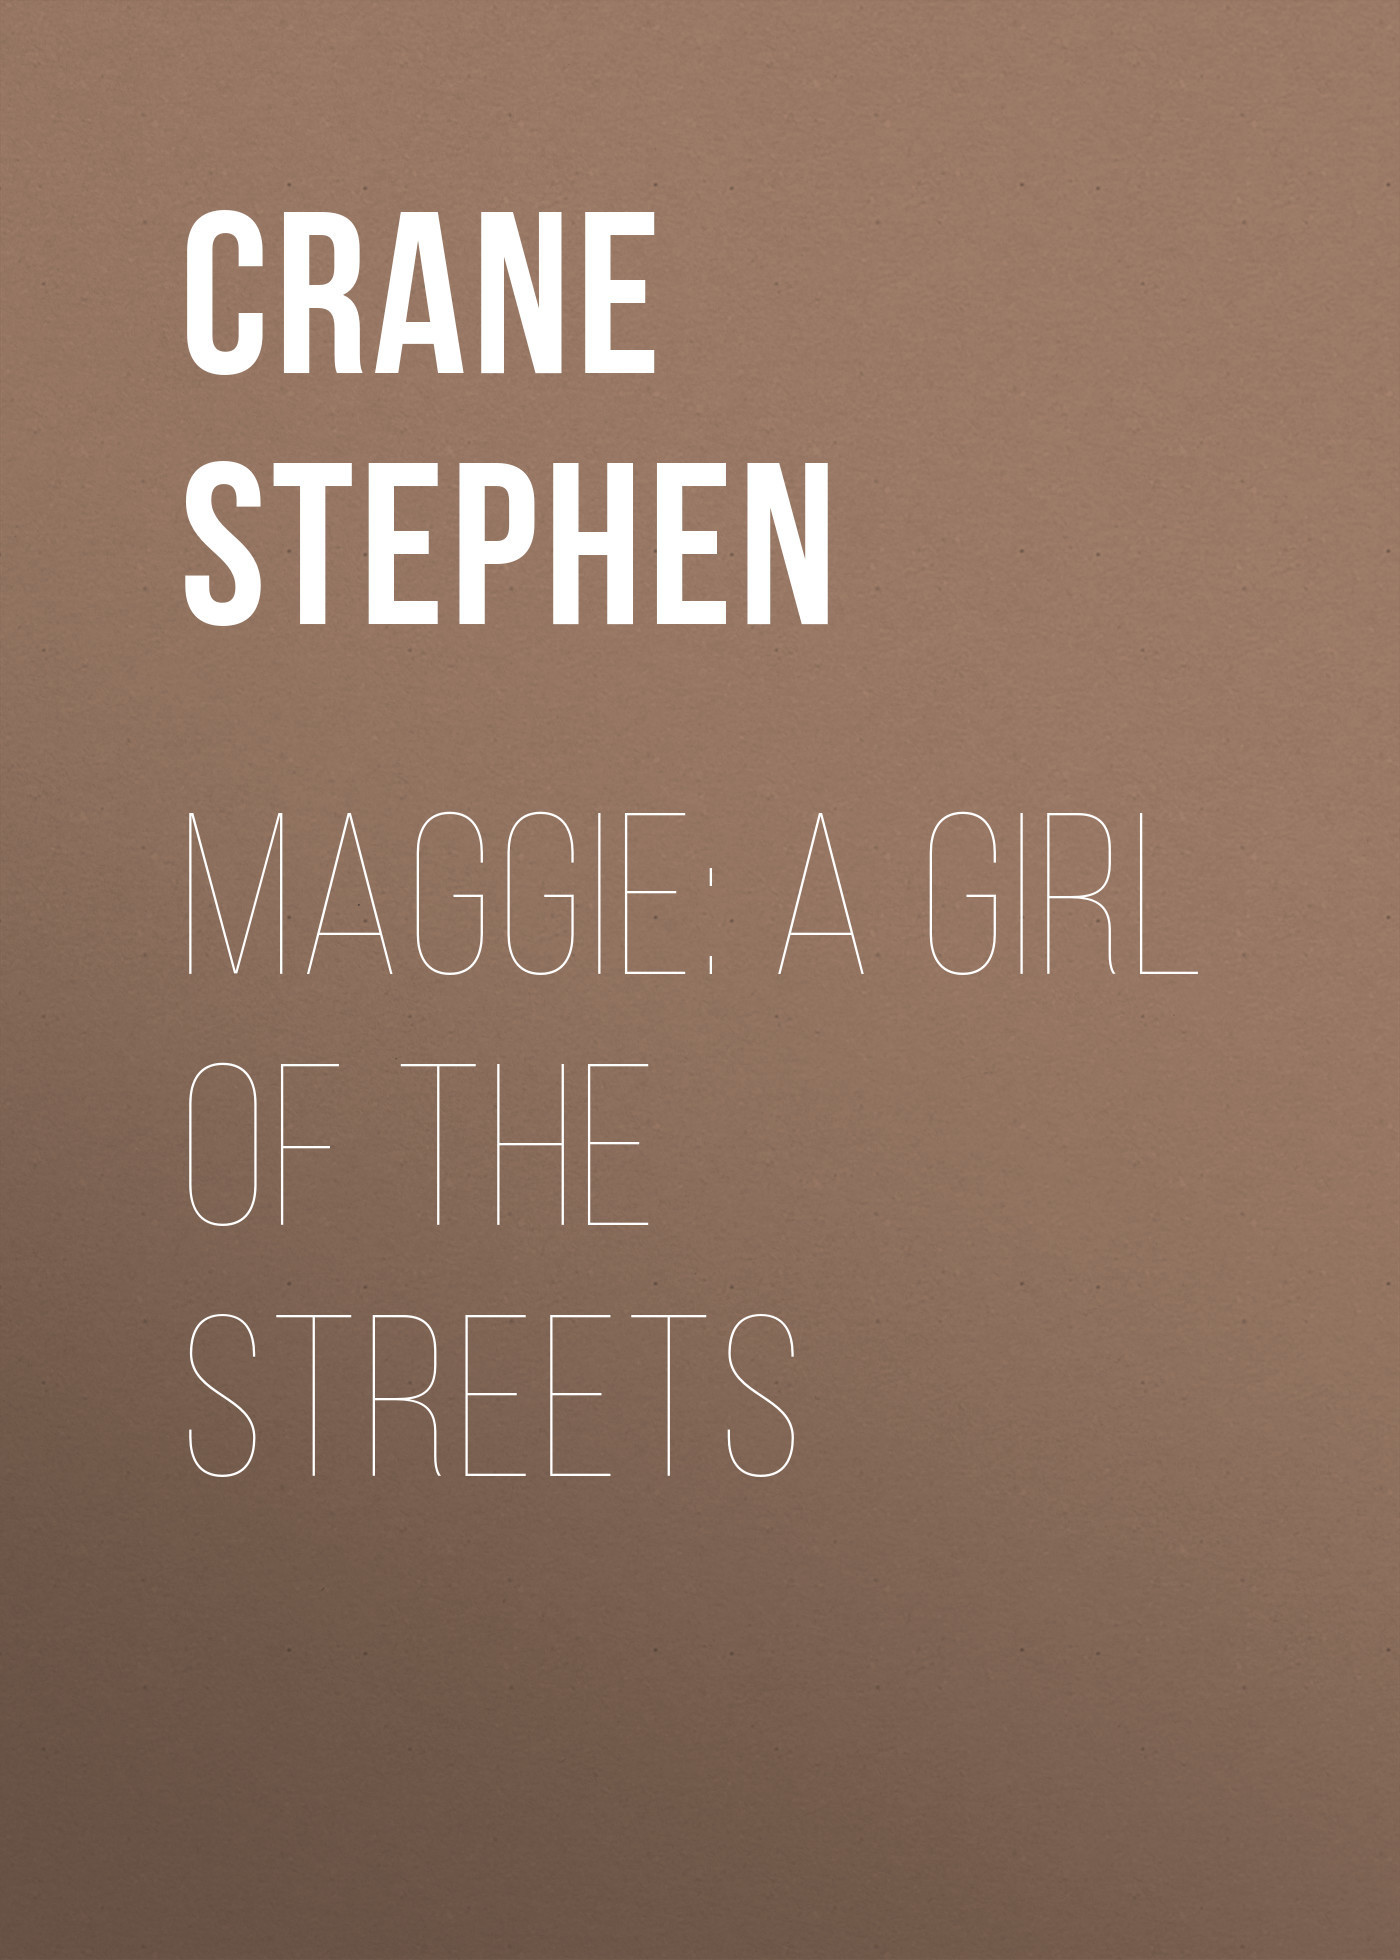 Crane Stephen Maggie: A Girl of the Streets пазл ravensburger сейшелы 1500 элементов